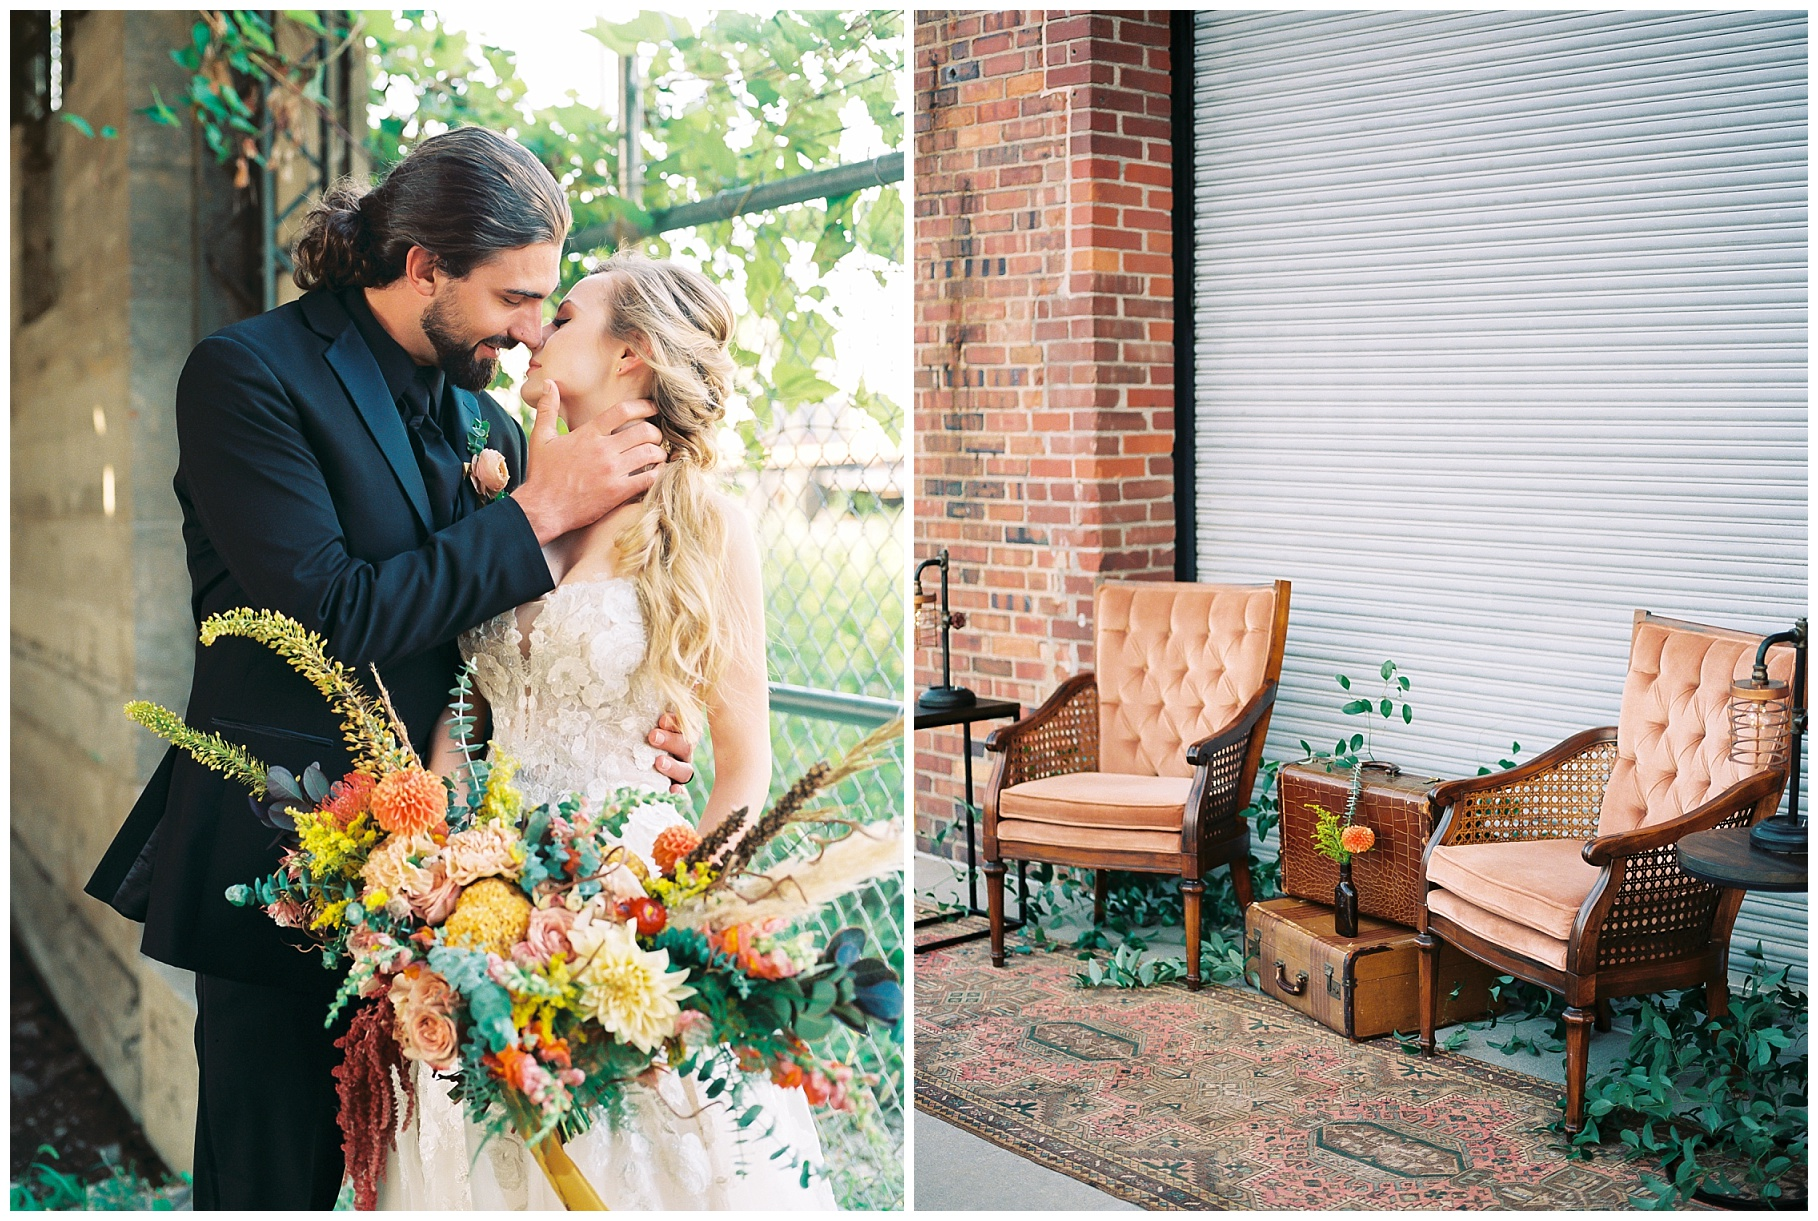 Urban Romance Wedding with Copper Accents at The Millbottom by Kelsi Kliethermes Photography Best Columbia Missouri Wedding Photographer_0029.jpg